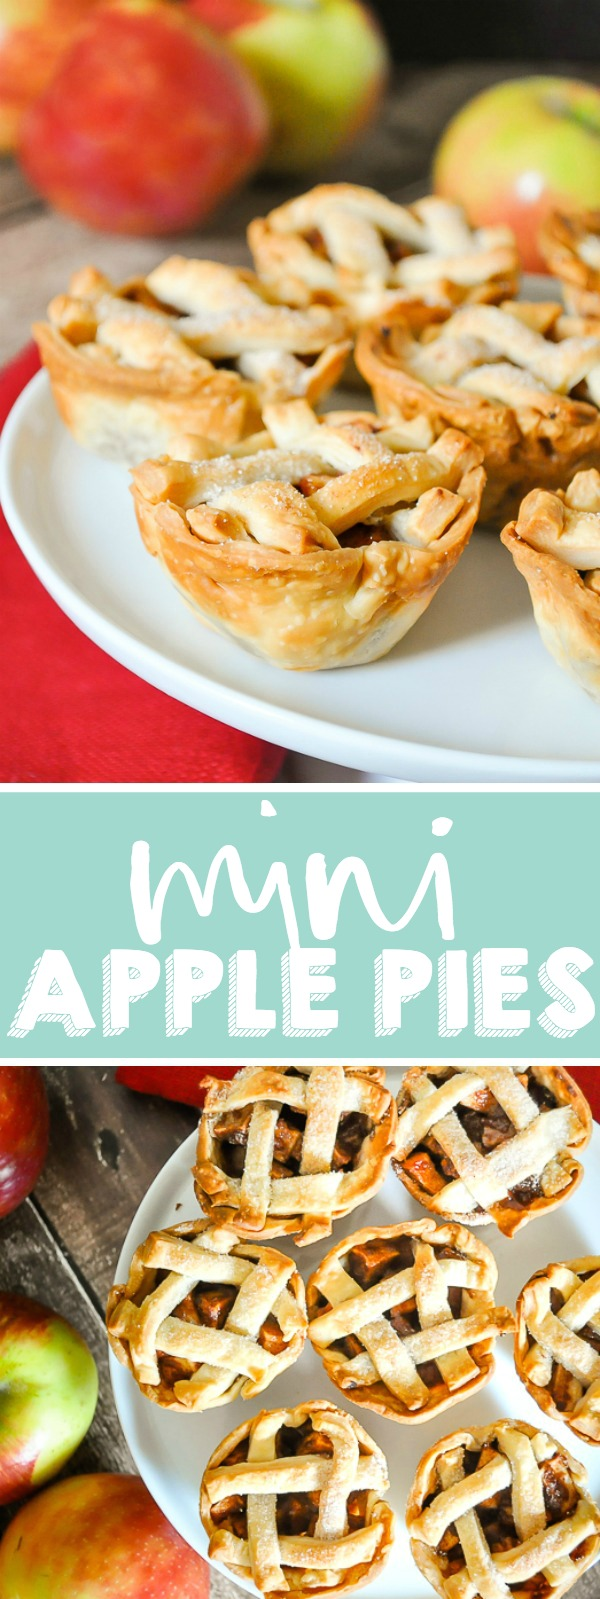 Mini apple pies are ideal for your holiday parties! Bake these individual apples pies in a muffin tin for an adorable holiday dessert and let guests easily serve themselves. Plus, they travel well for wherever you might be celebrating Thanksgiving or Christmas! | THE LOVE NERDS #thanksgivingdessert #christmasdessert #thanksgivingpie #christmaspie